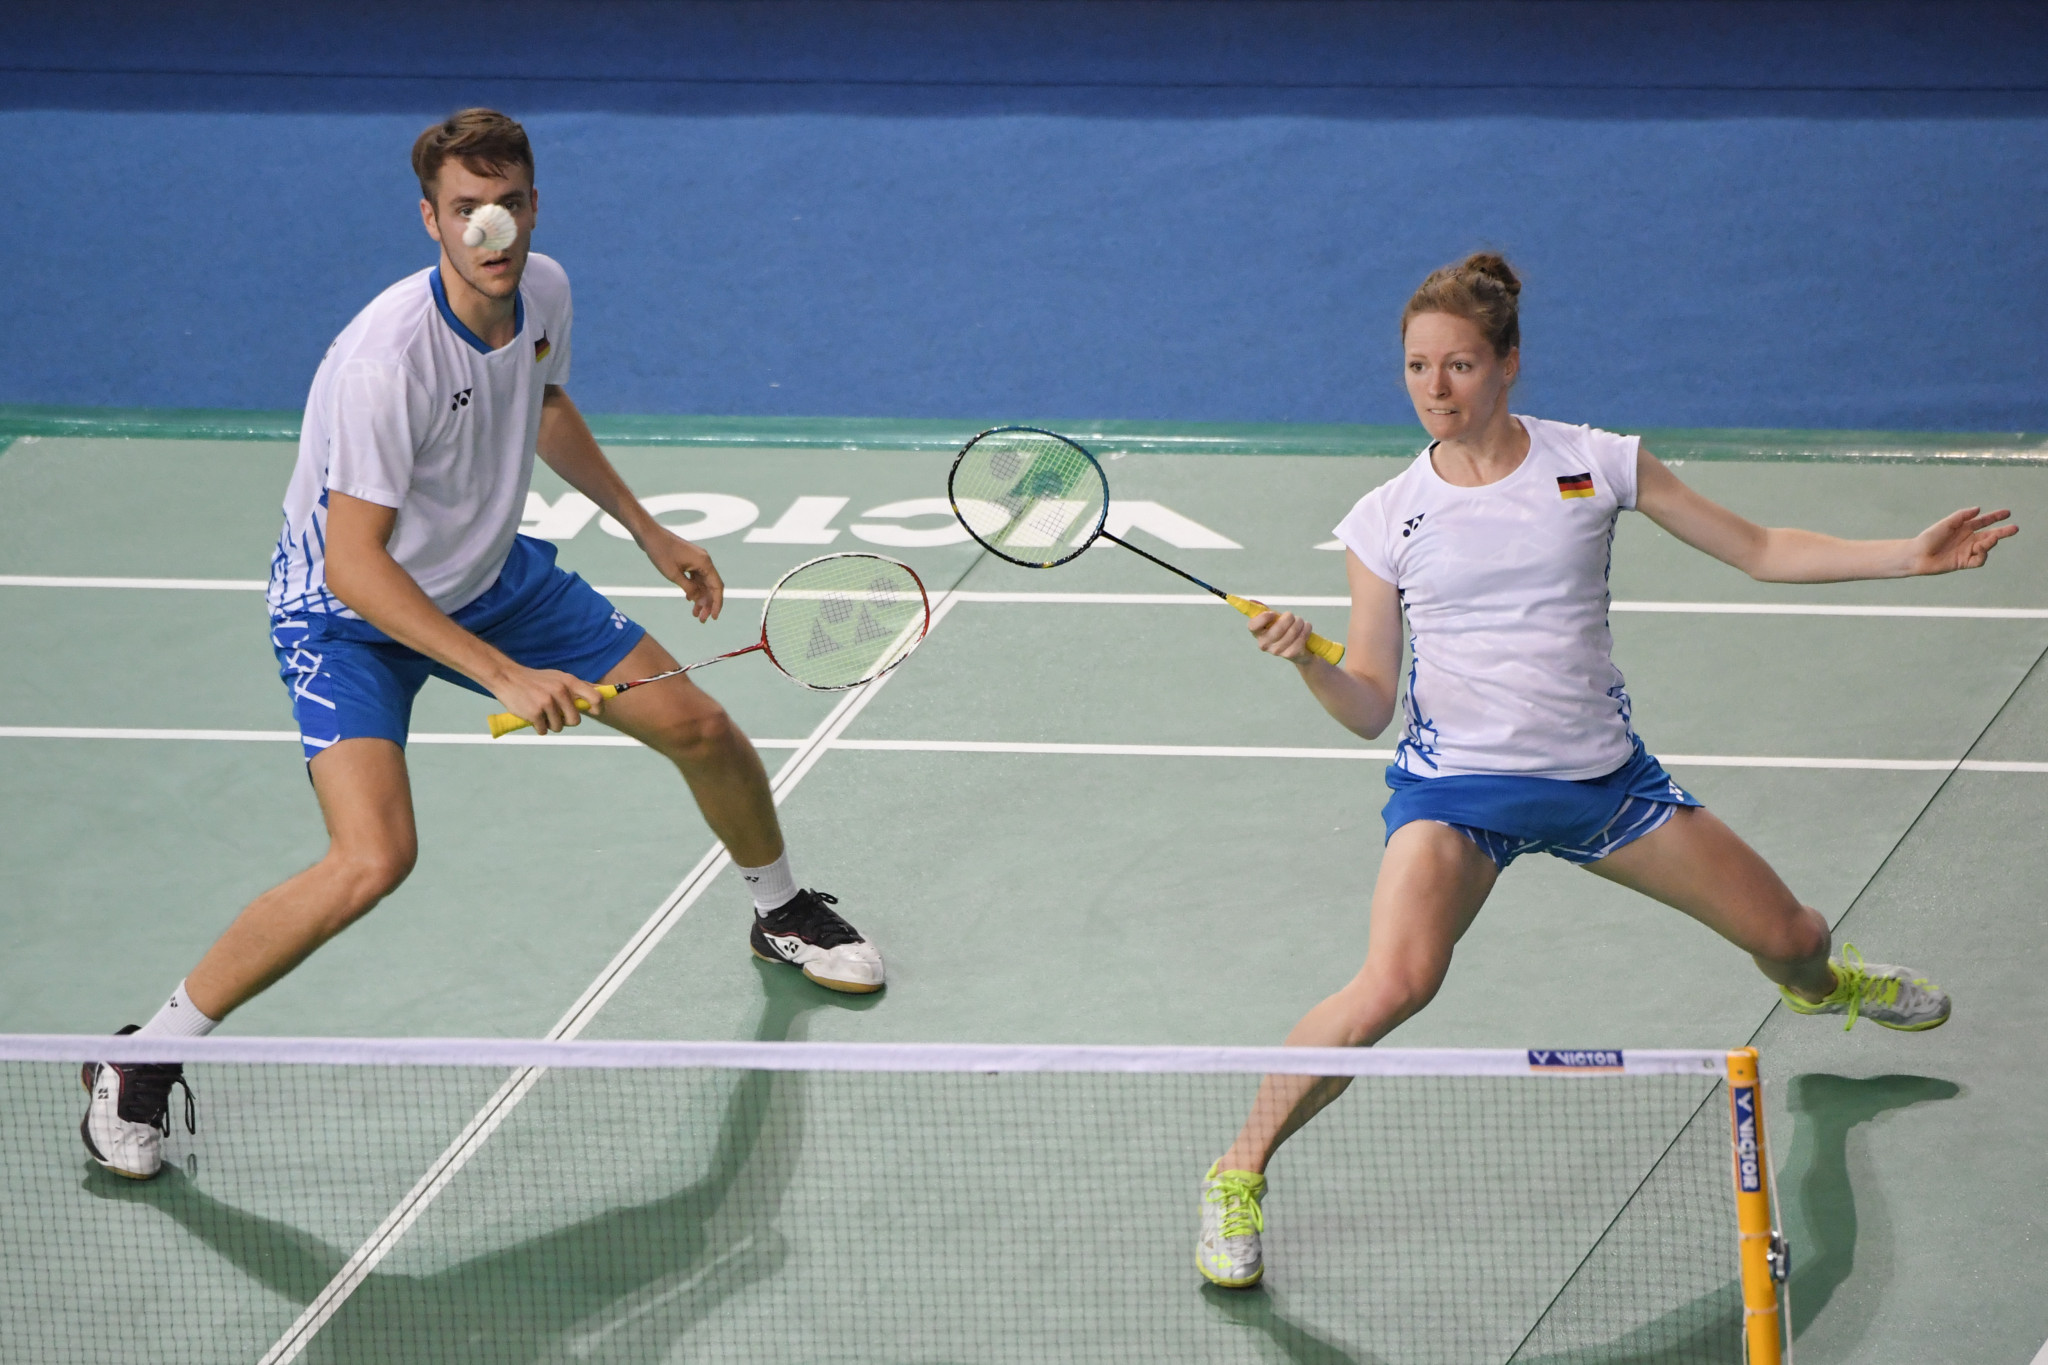 Top mixed doubles seeds too strong for 62-year-old opponent as BWF US Open begins